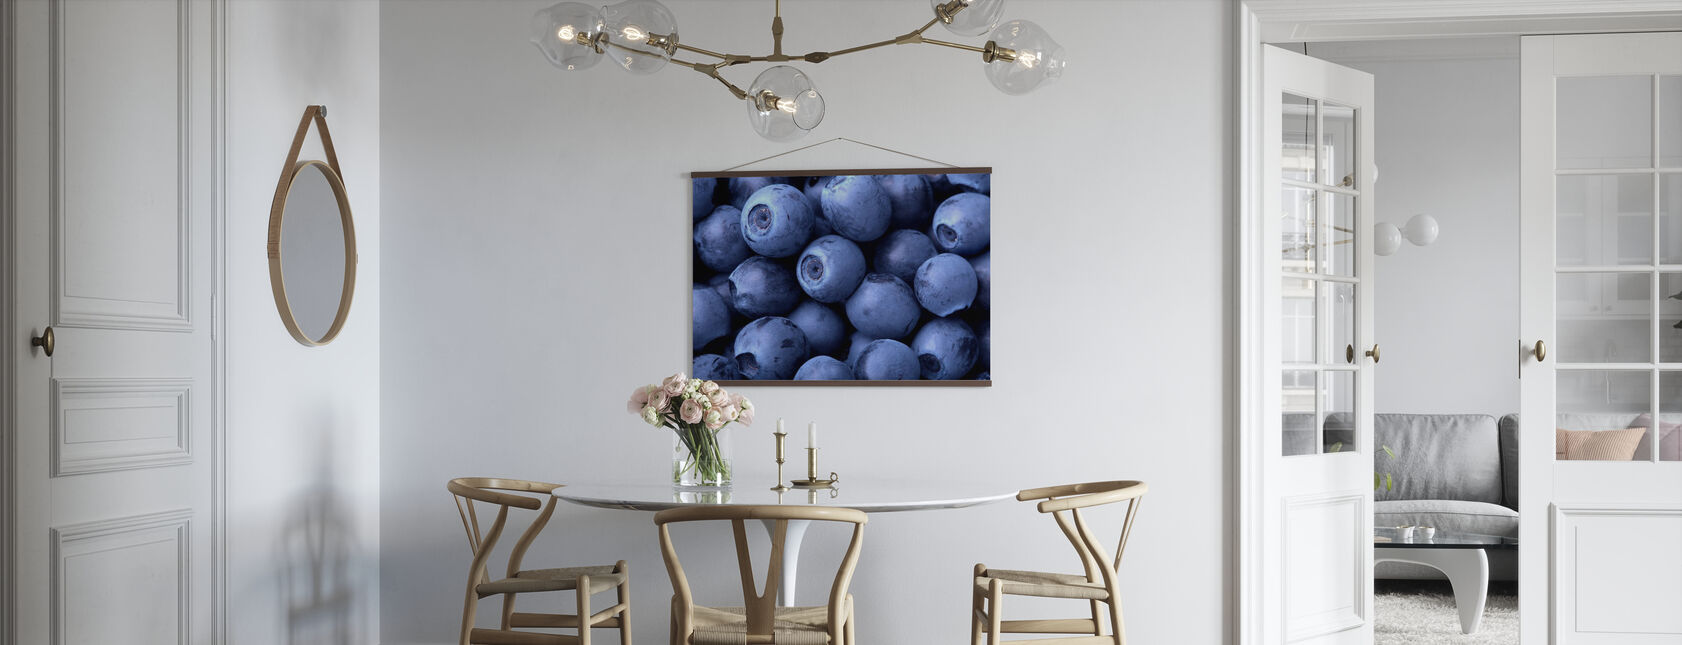 Blueberries - Poster - Kitchen